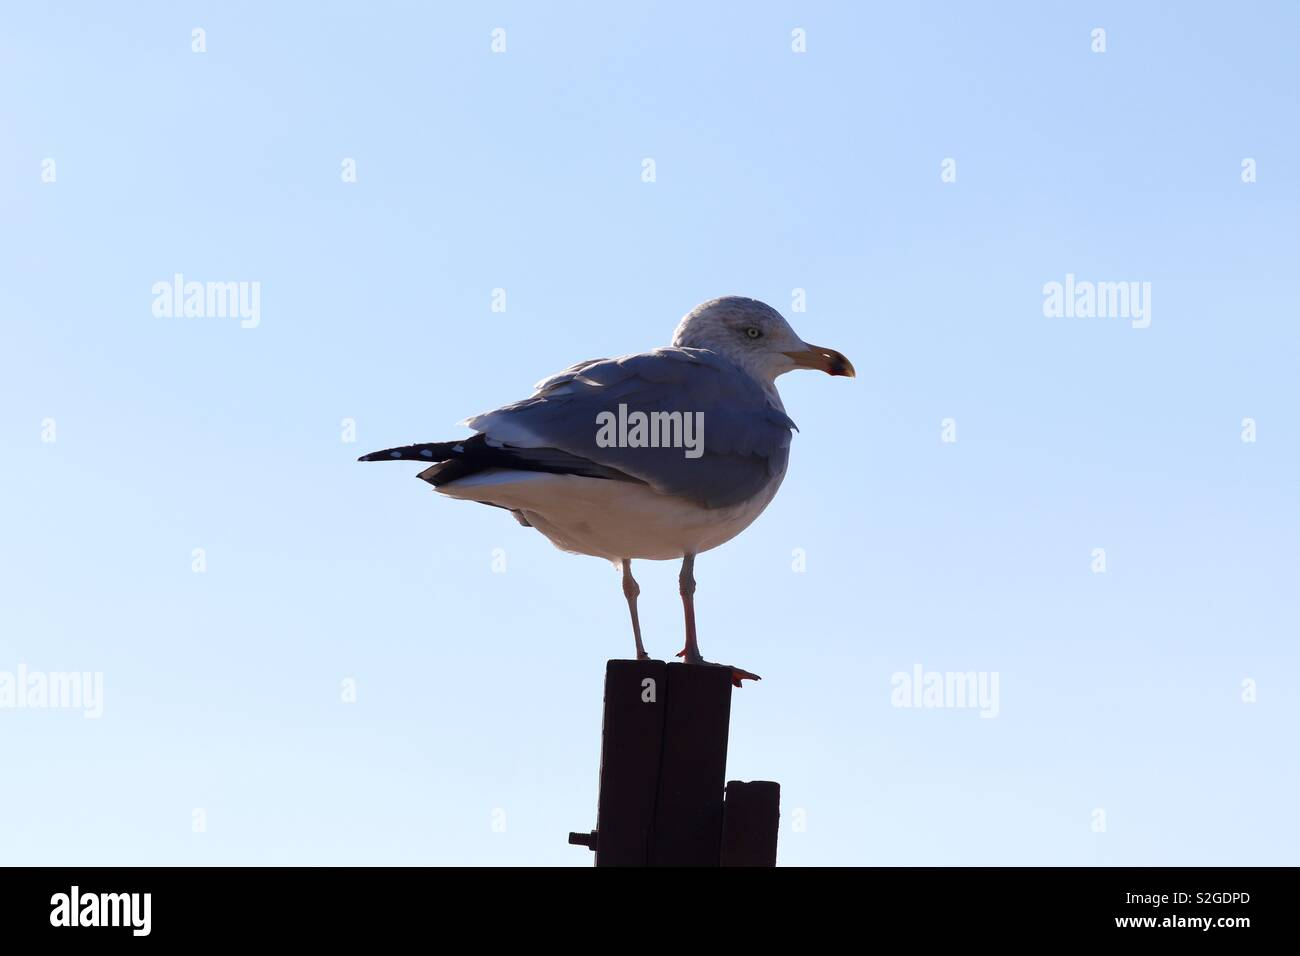 Seagull sitting on a fence post against a blue sky - Stock Image